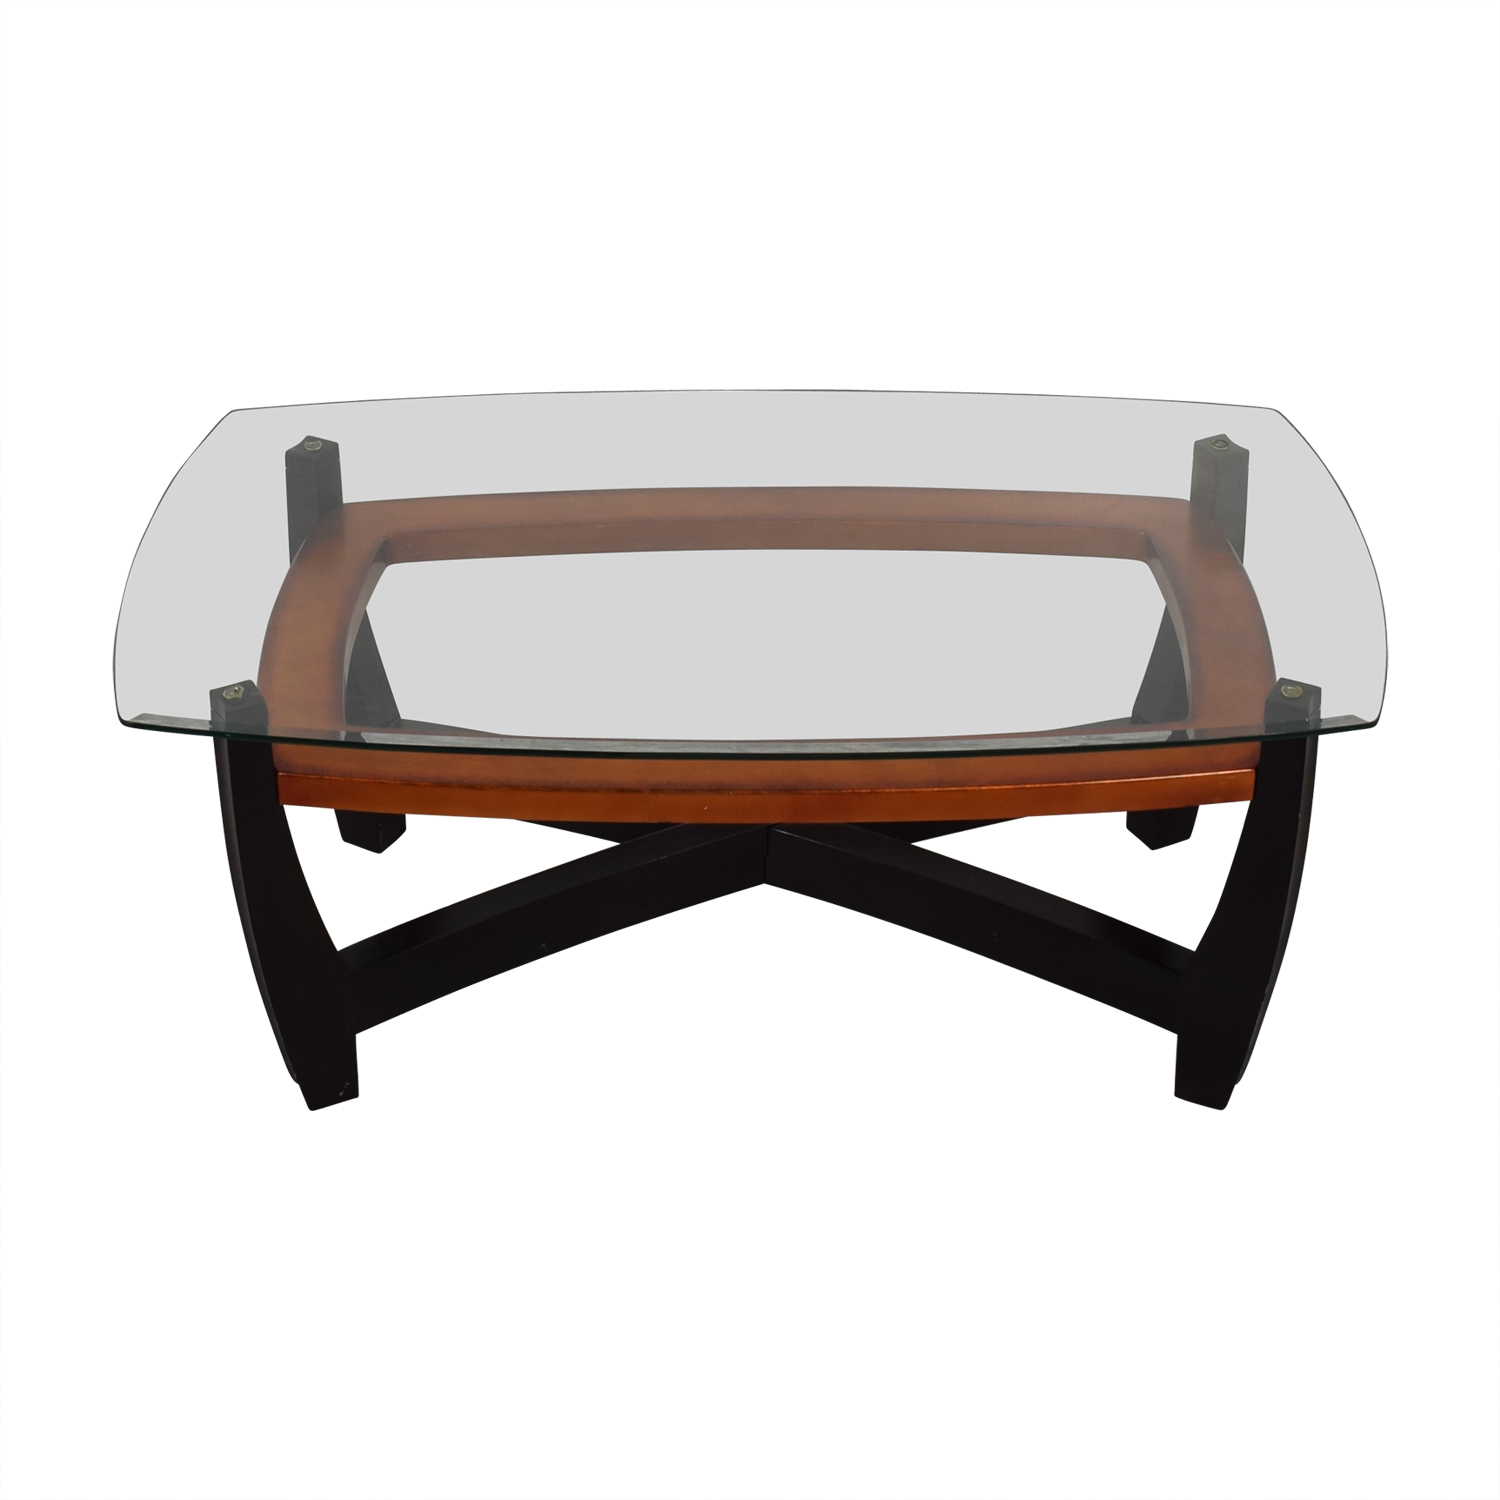 Raymour & Flanigan Raymour & Flanigan Black and Brown Glass Top Coffee Table